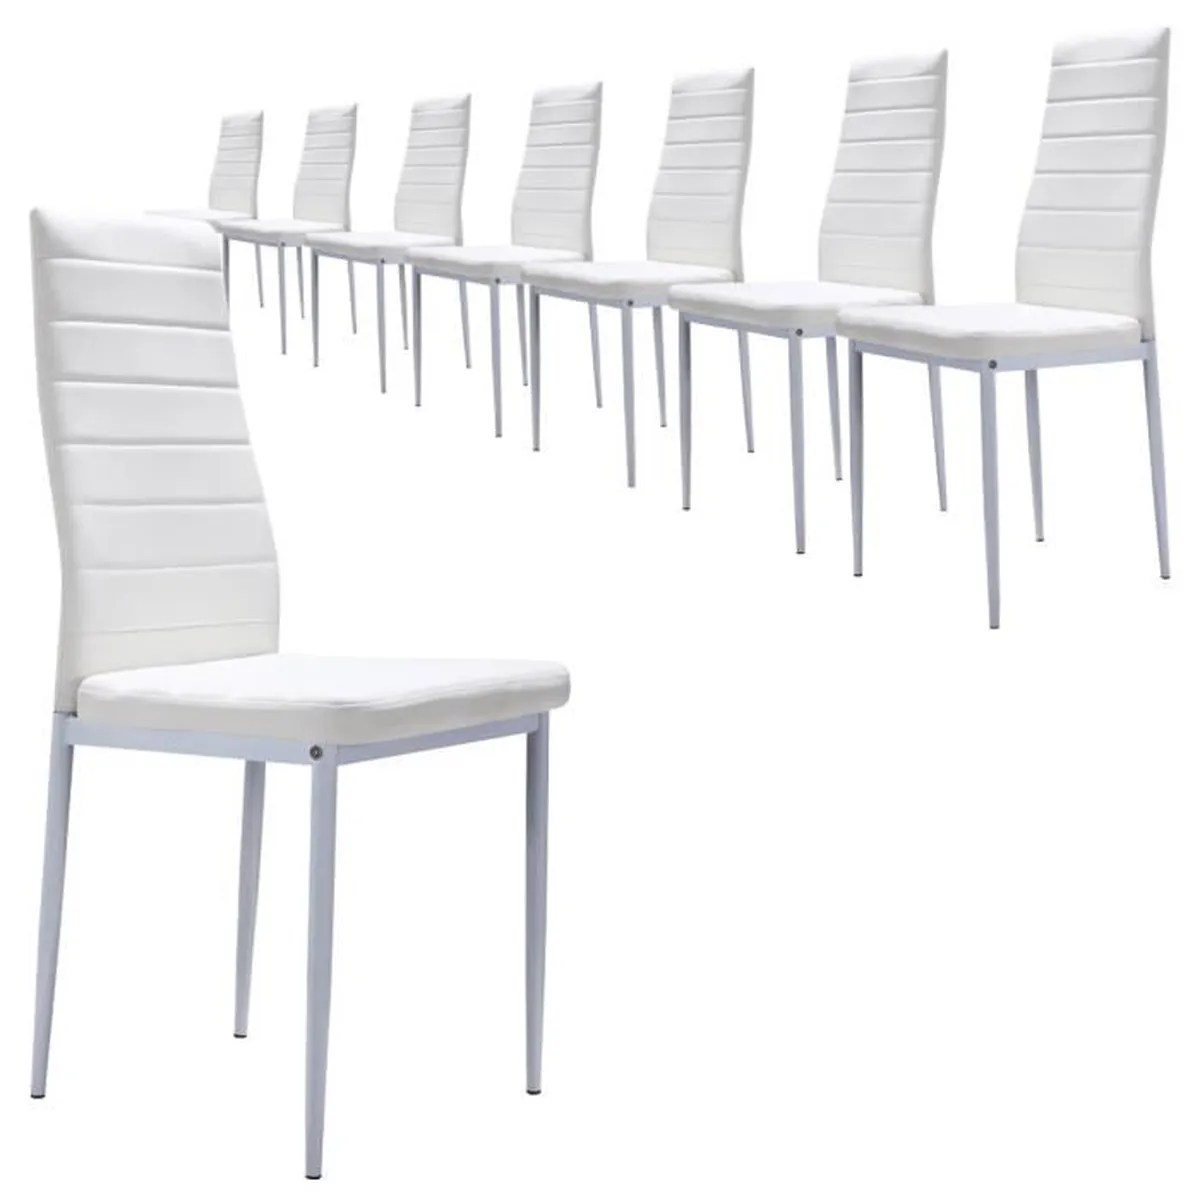 Lot 8 Chaises S2 Blanc Lot De 8 Chaises Design Et Ultra Confort Simili